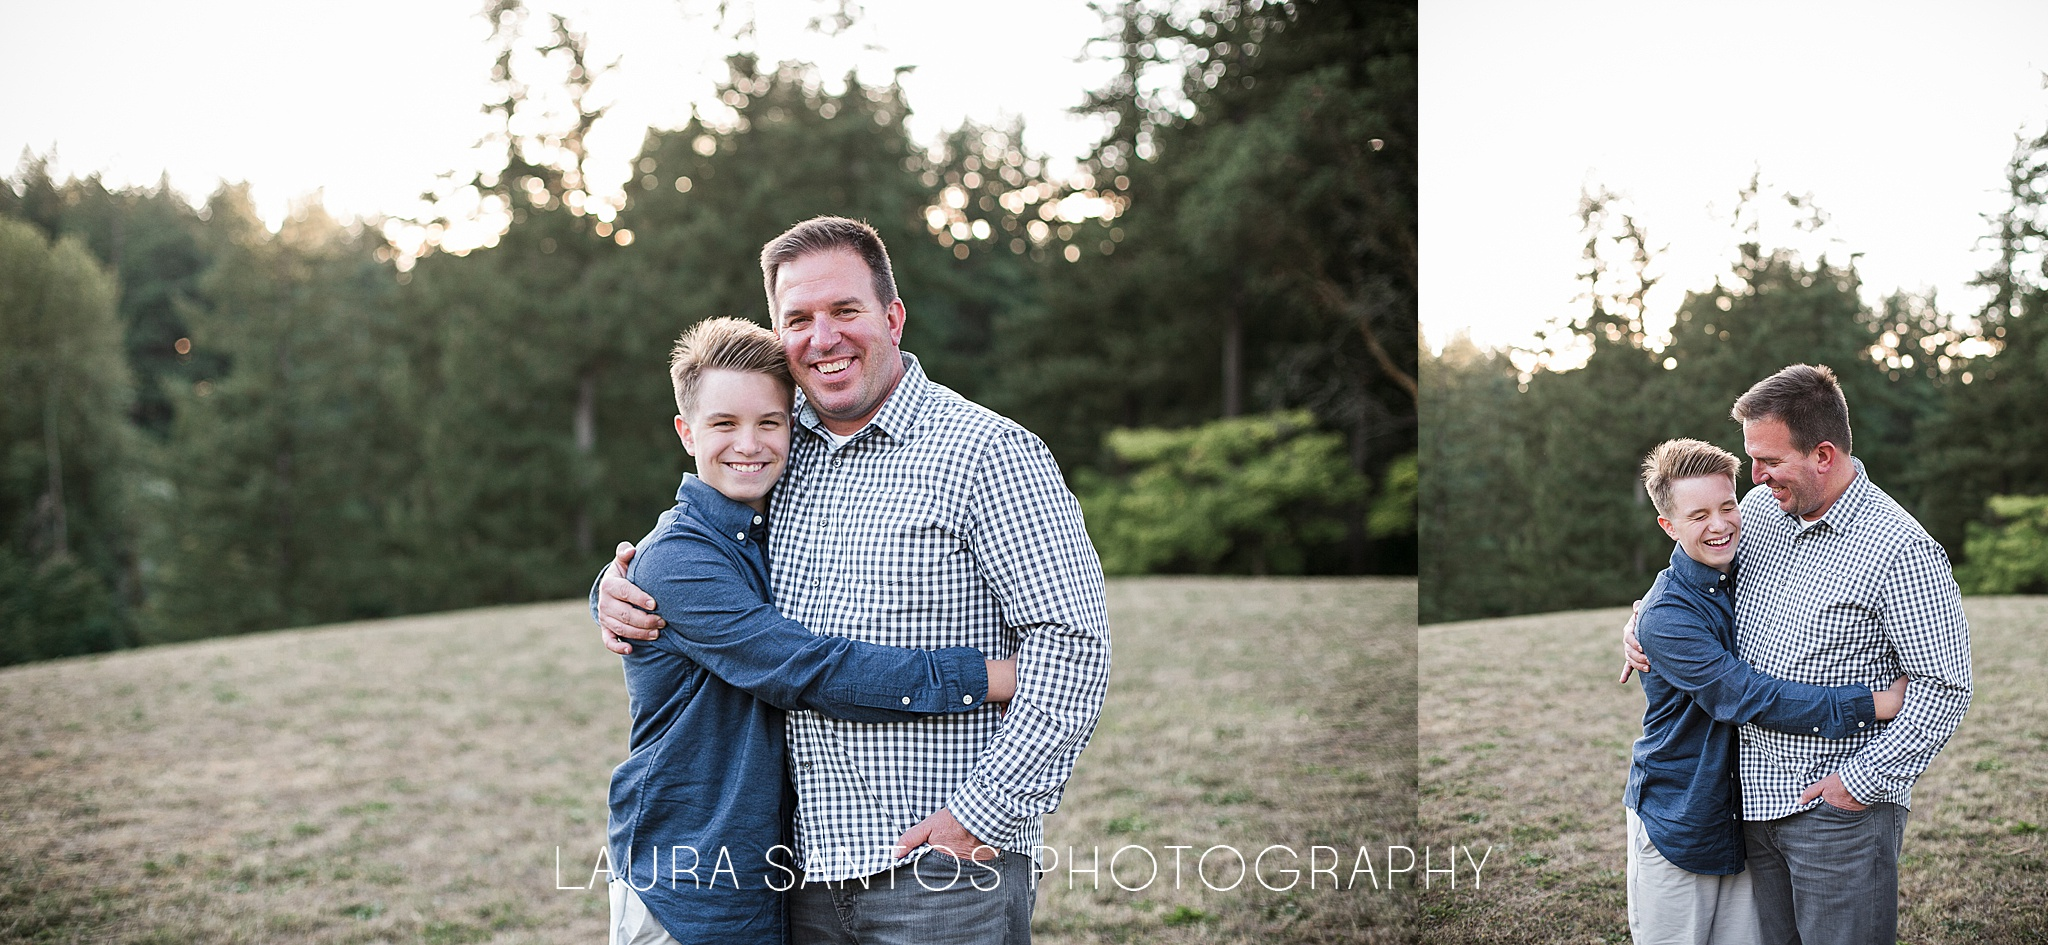 Laura Santos Photography Portland Oregon Family Photographer_0791.jpg